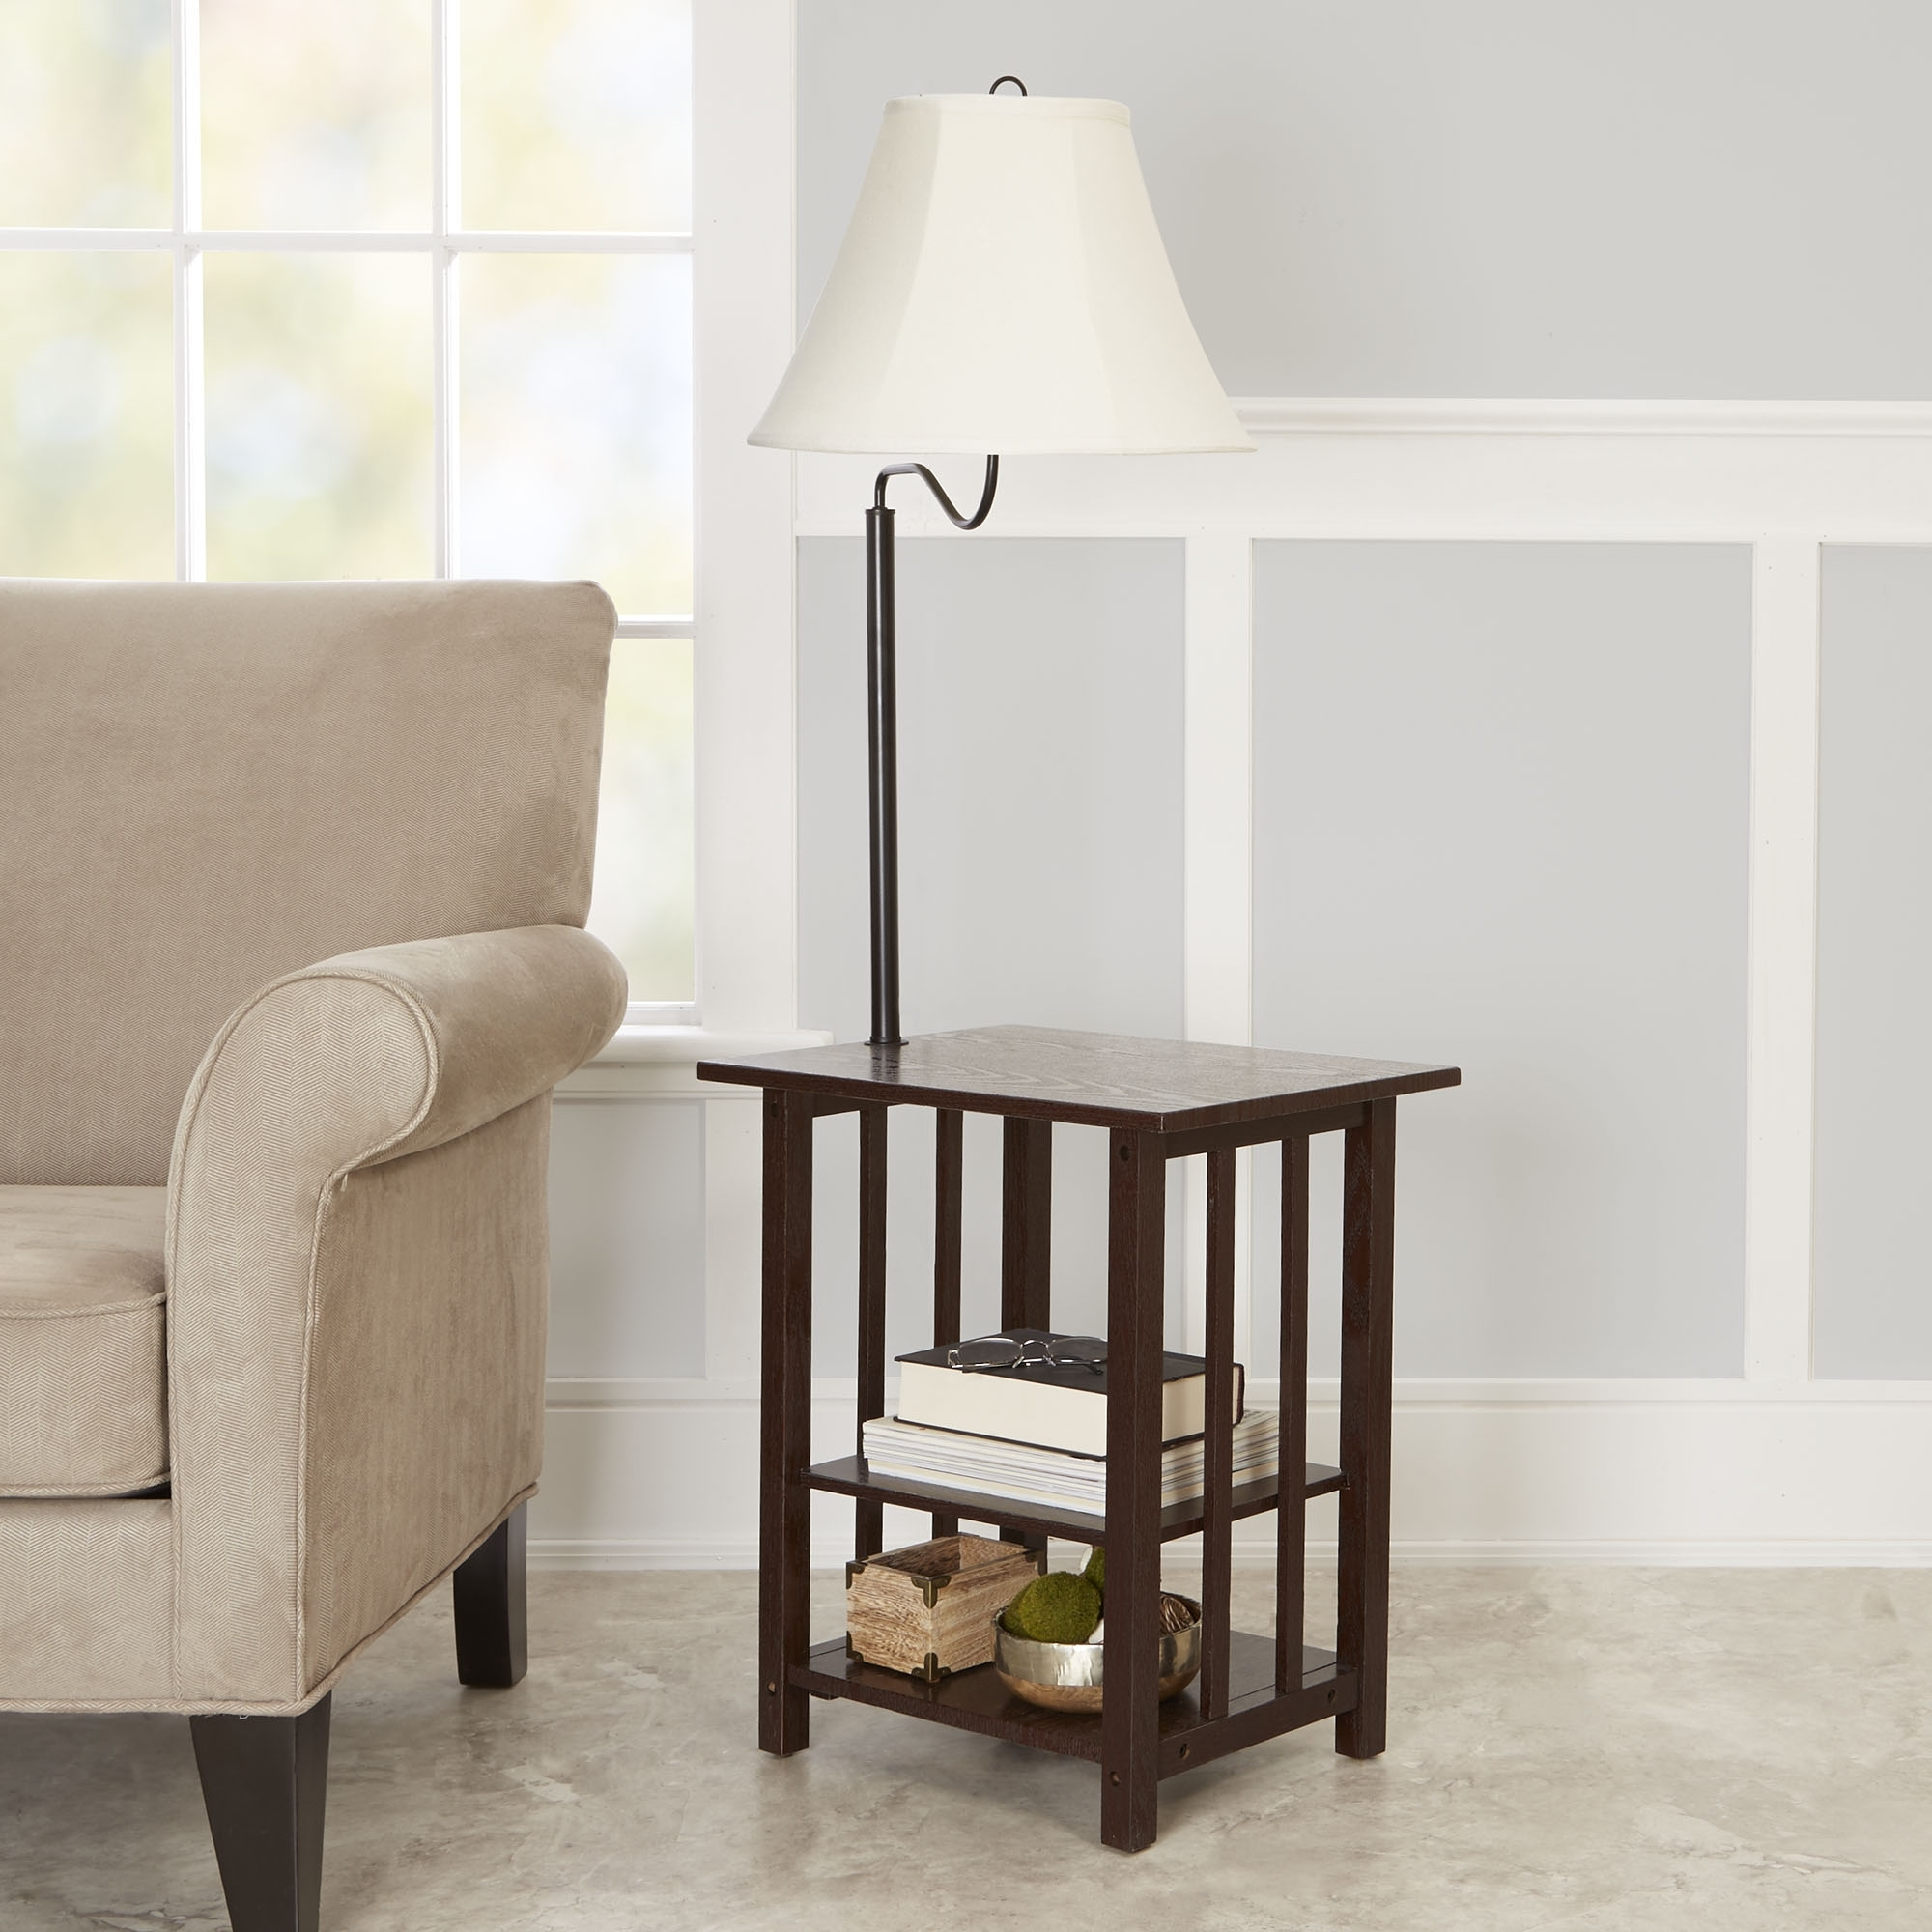 Better Homes & Gardens 3 Rack End Table Floor Lamp, Espresso Finish Intended For Latest Walmart Living Room Table Lamps (View 2 of 20)